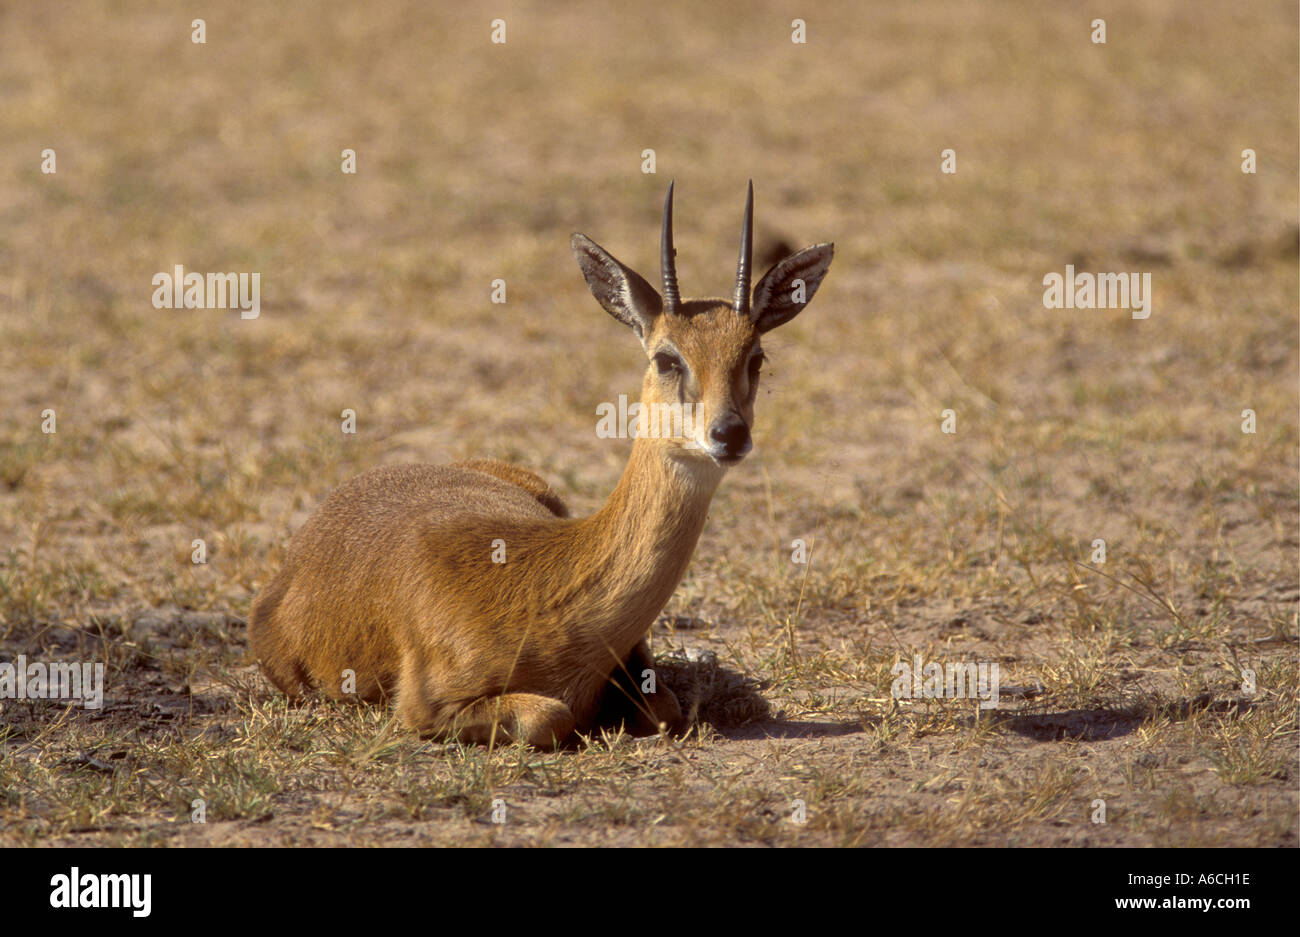 Oribi sitting down to chew the cud in Queen Elizabeth National Park Uganda East Africa - Stock Image